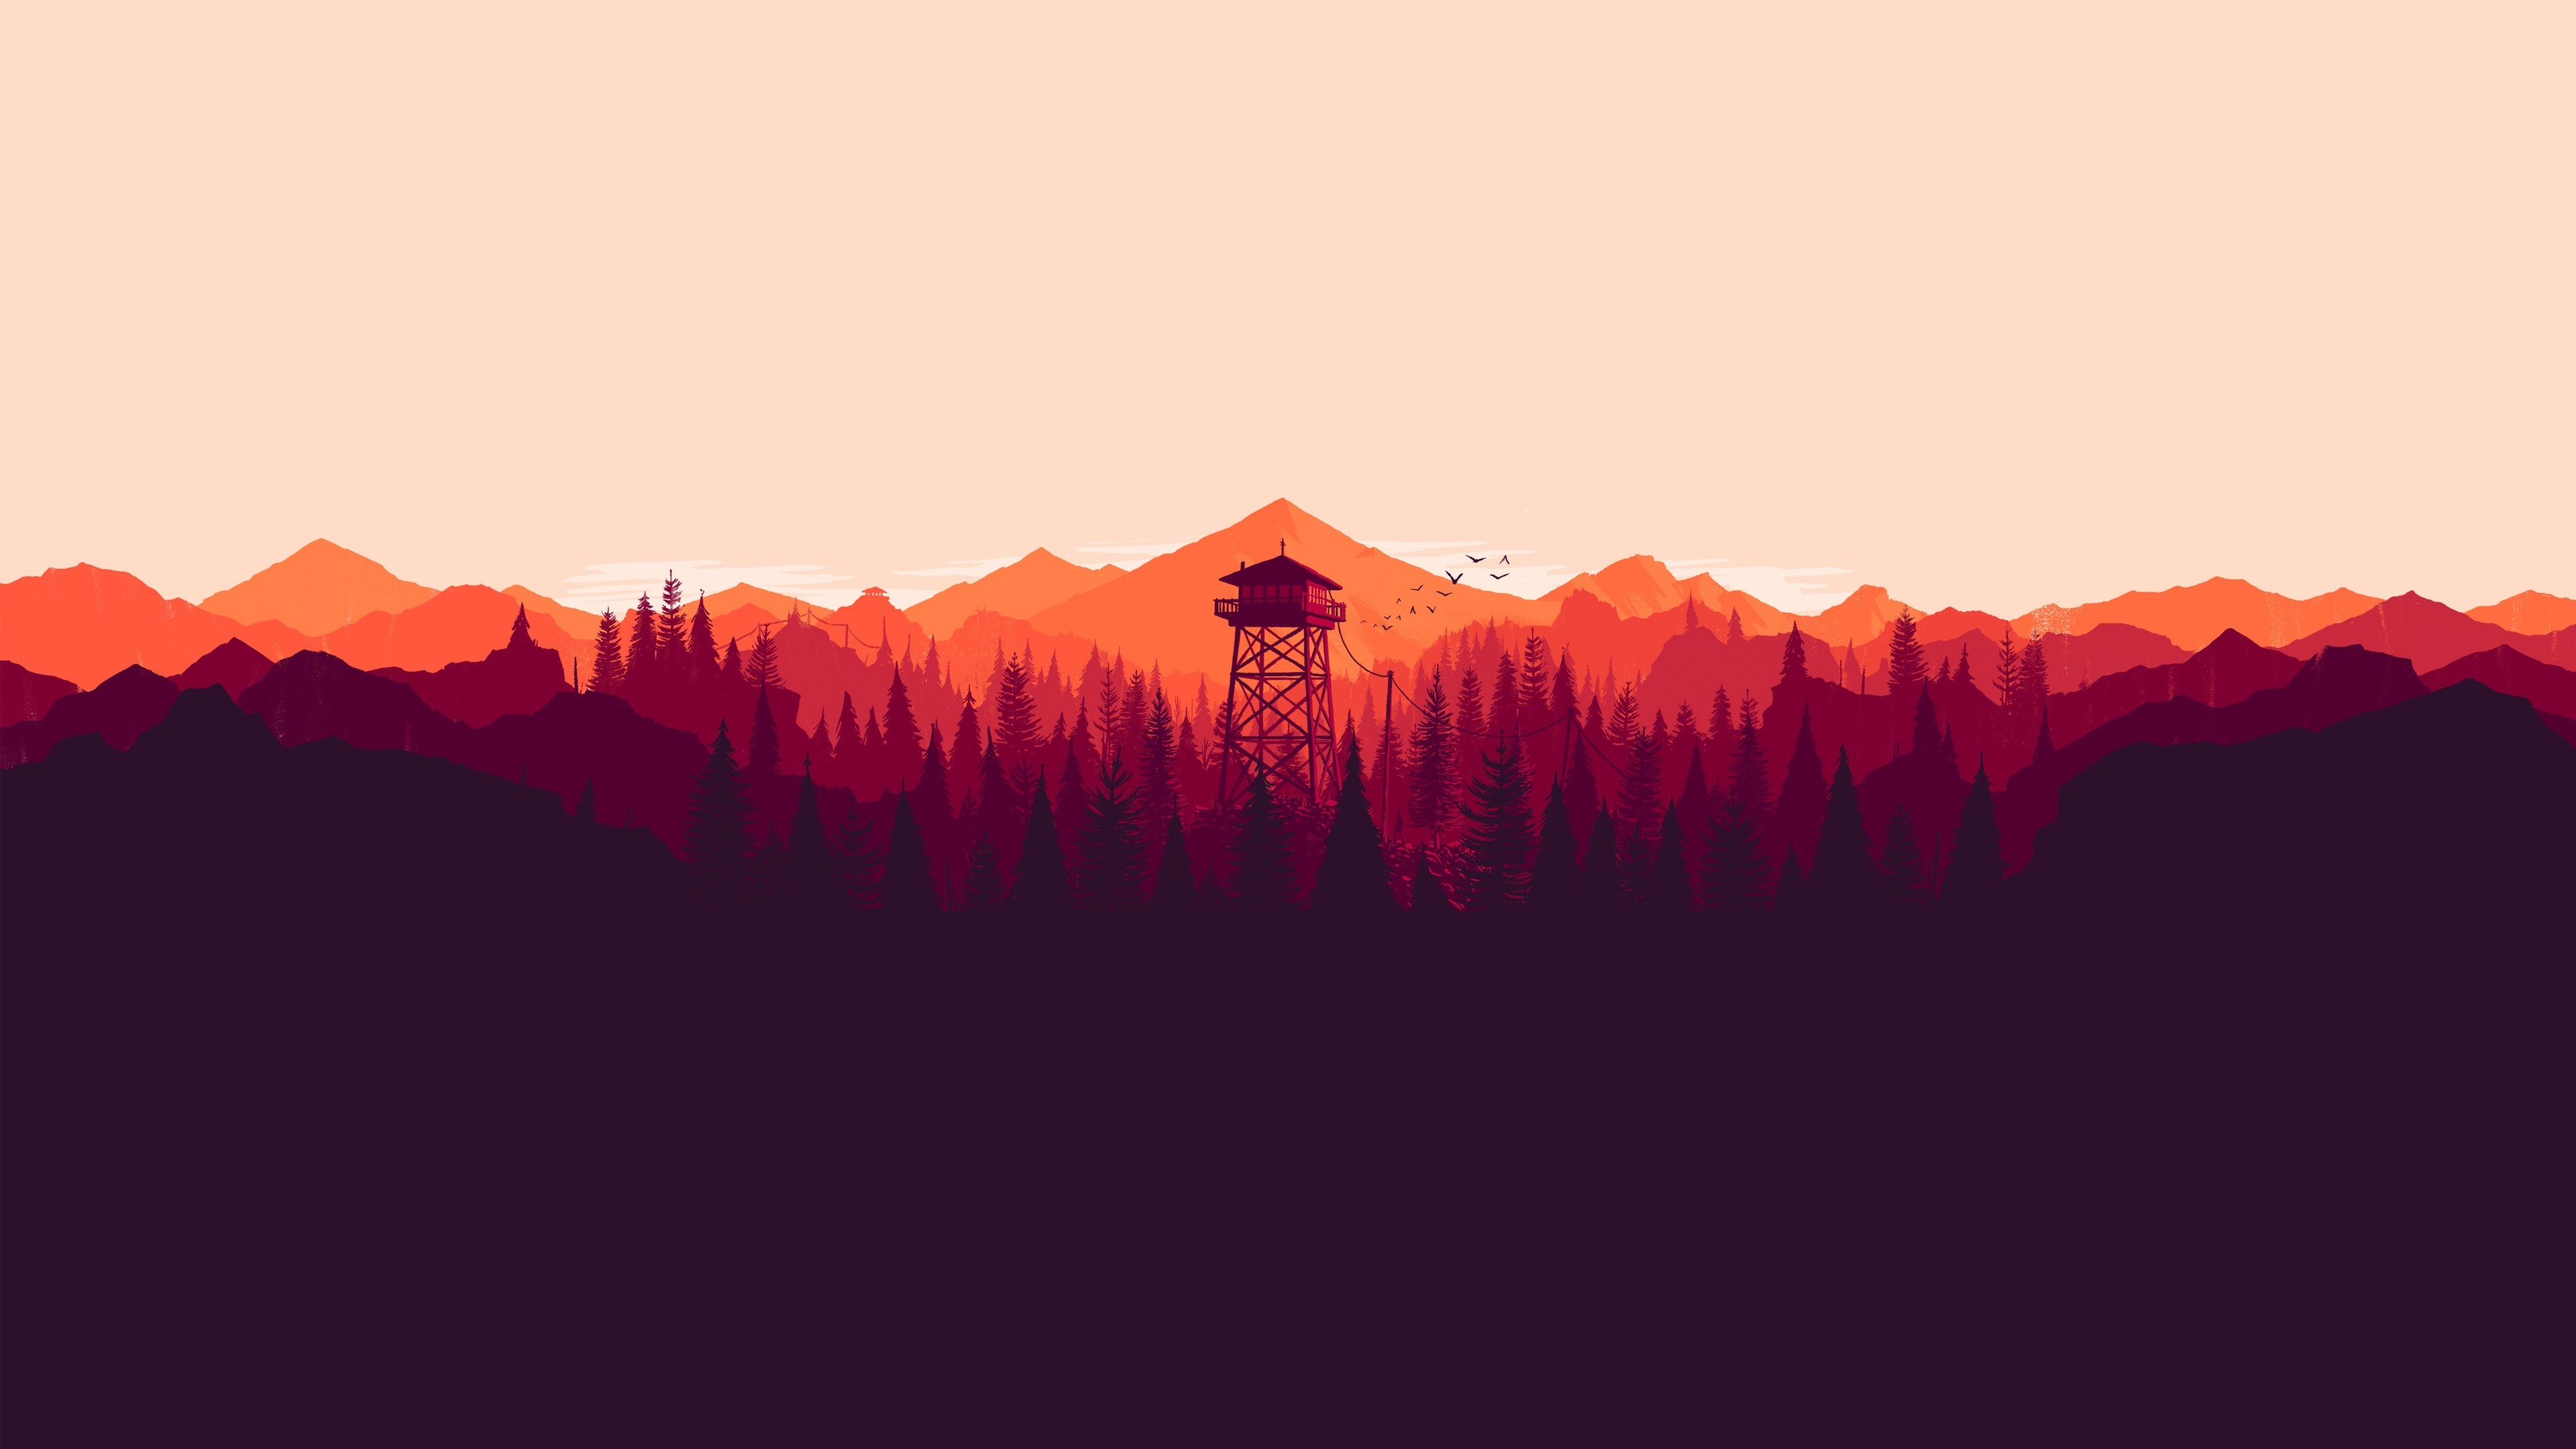 3840x2160 Images Firewatch Free download.